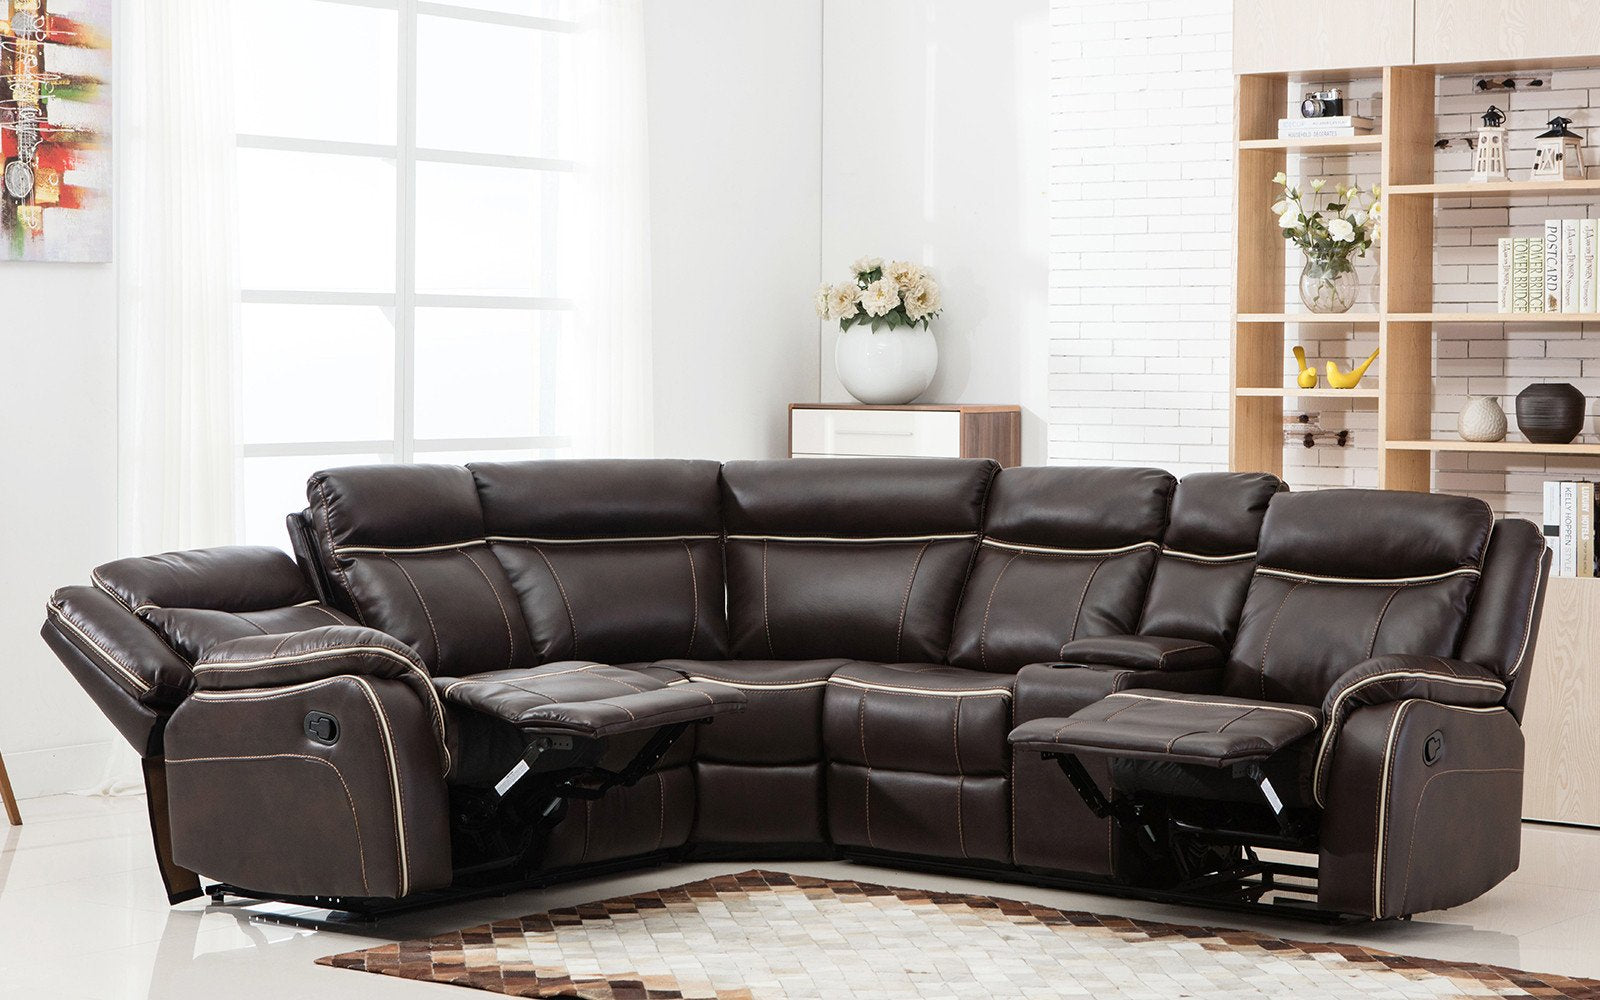 Bonded Leather Recliner Sectional Image